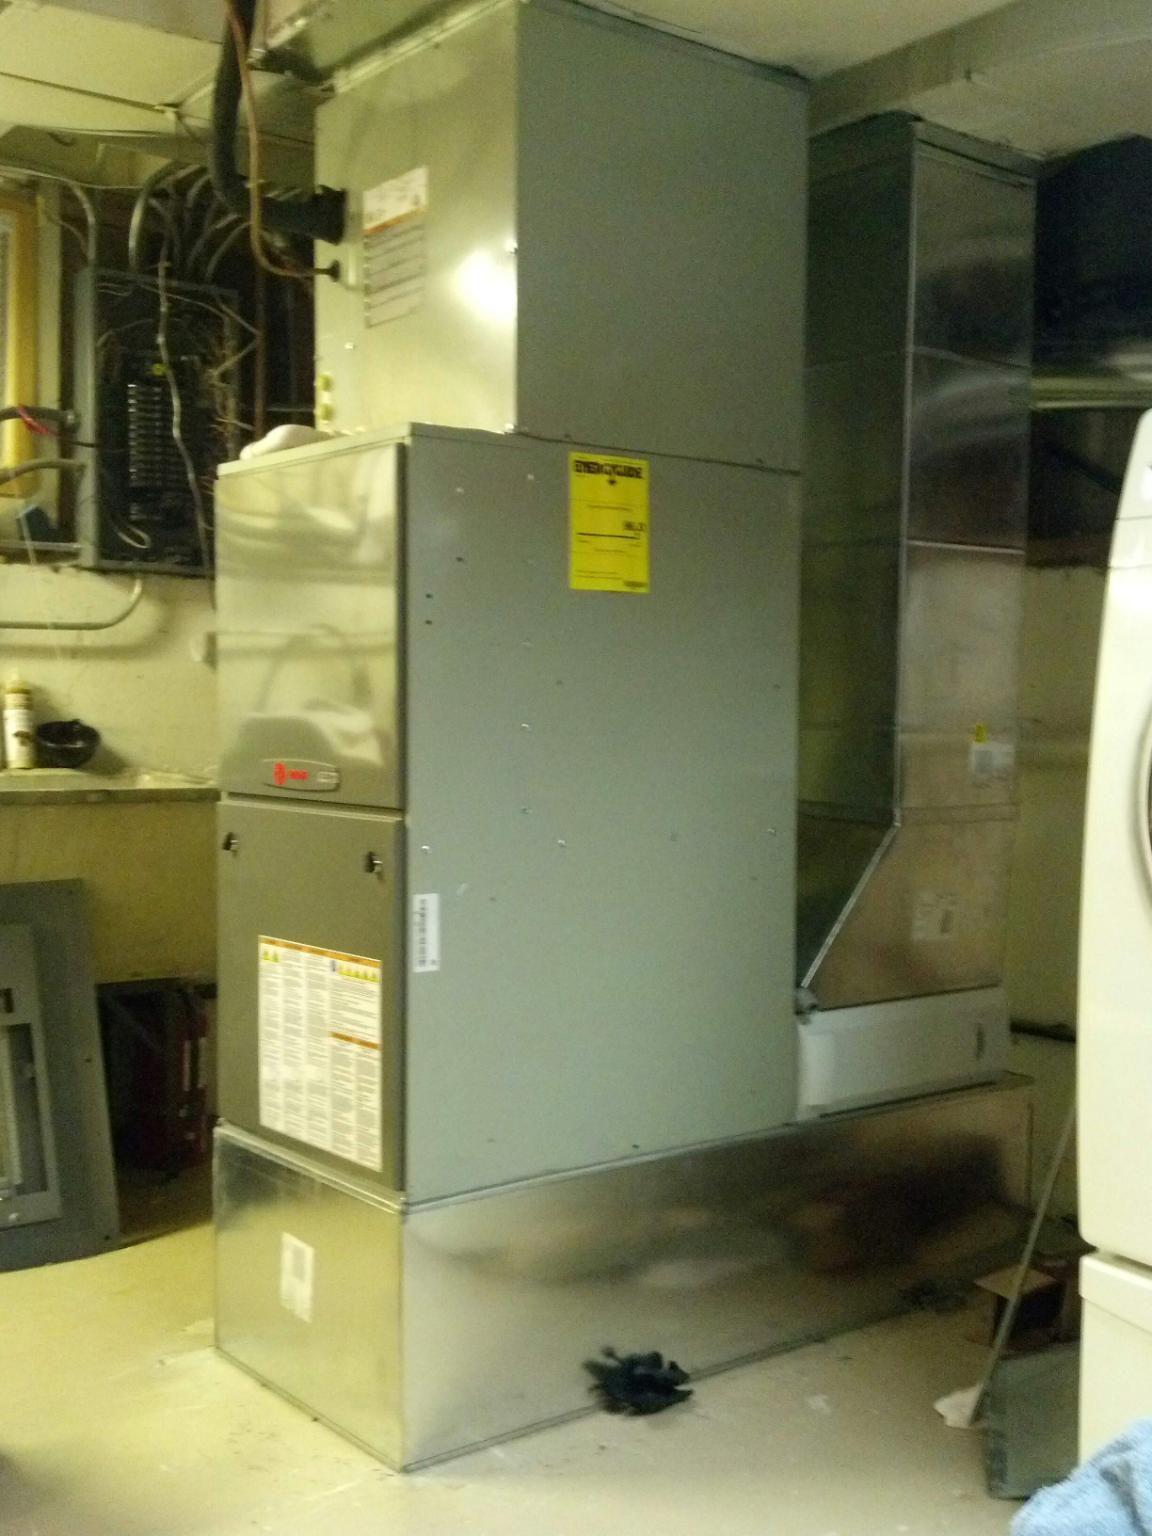 (side view) Trane XC95m Modulating furnace with a custom